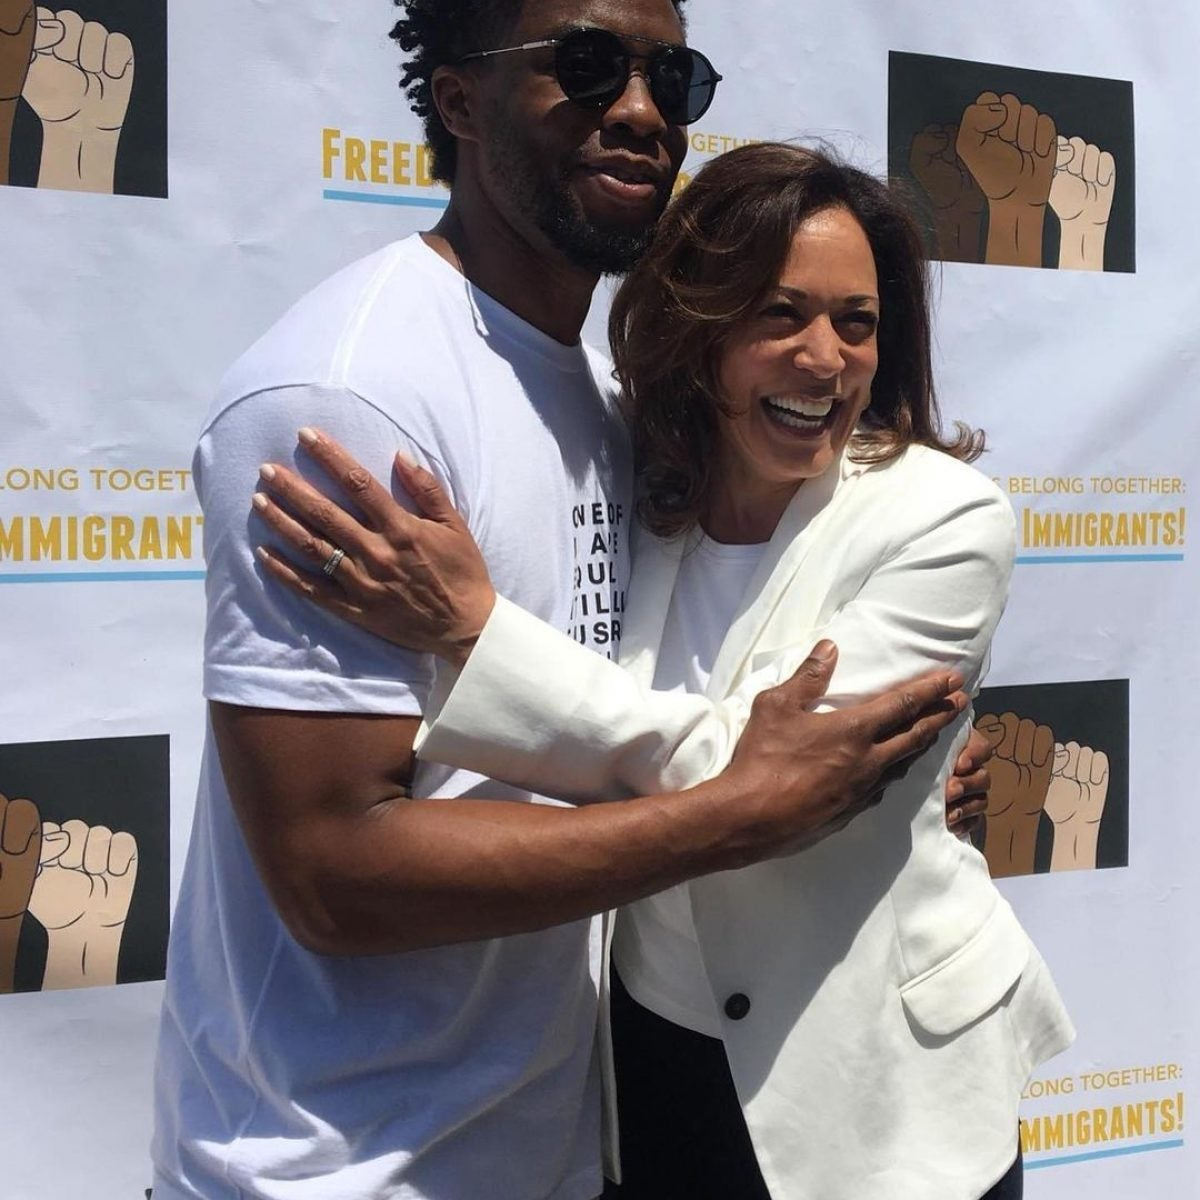 Pics Of Our Favorite Celebs With Vice President Kamala Harris